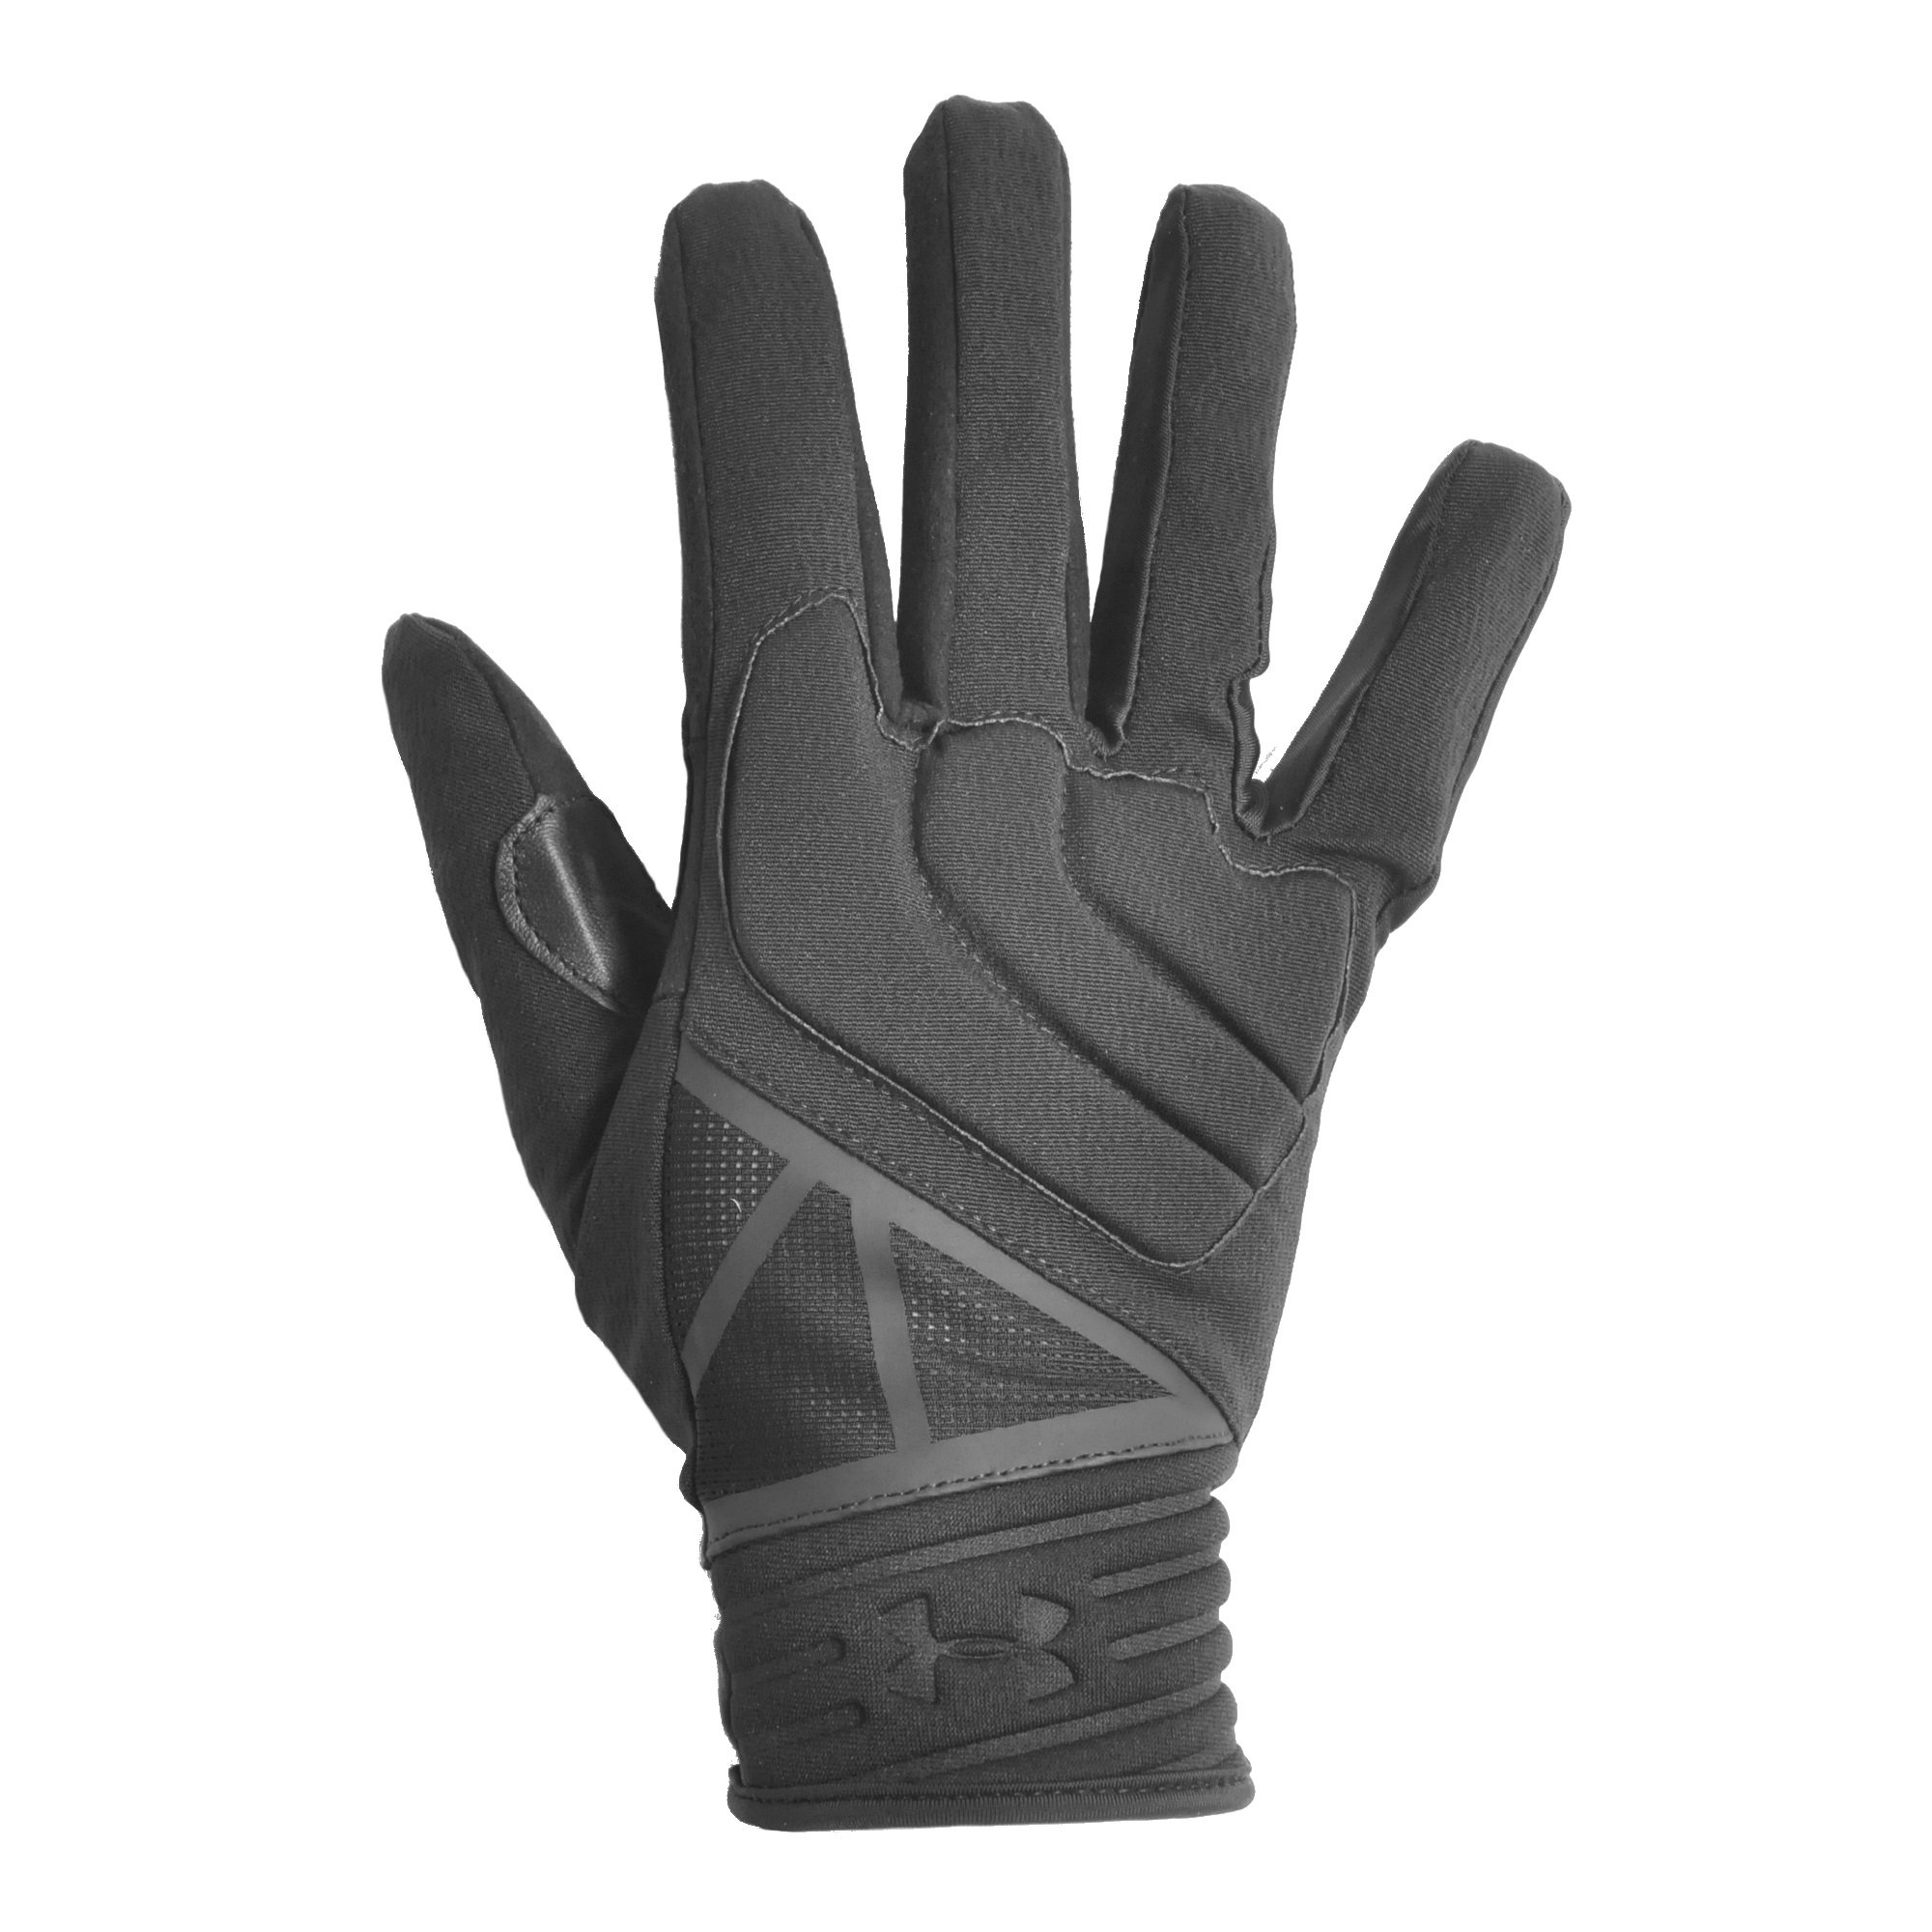 Under Armour Mens UA Tactical Duty Gloves Medium Coyote Brown by Under Armour